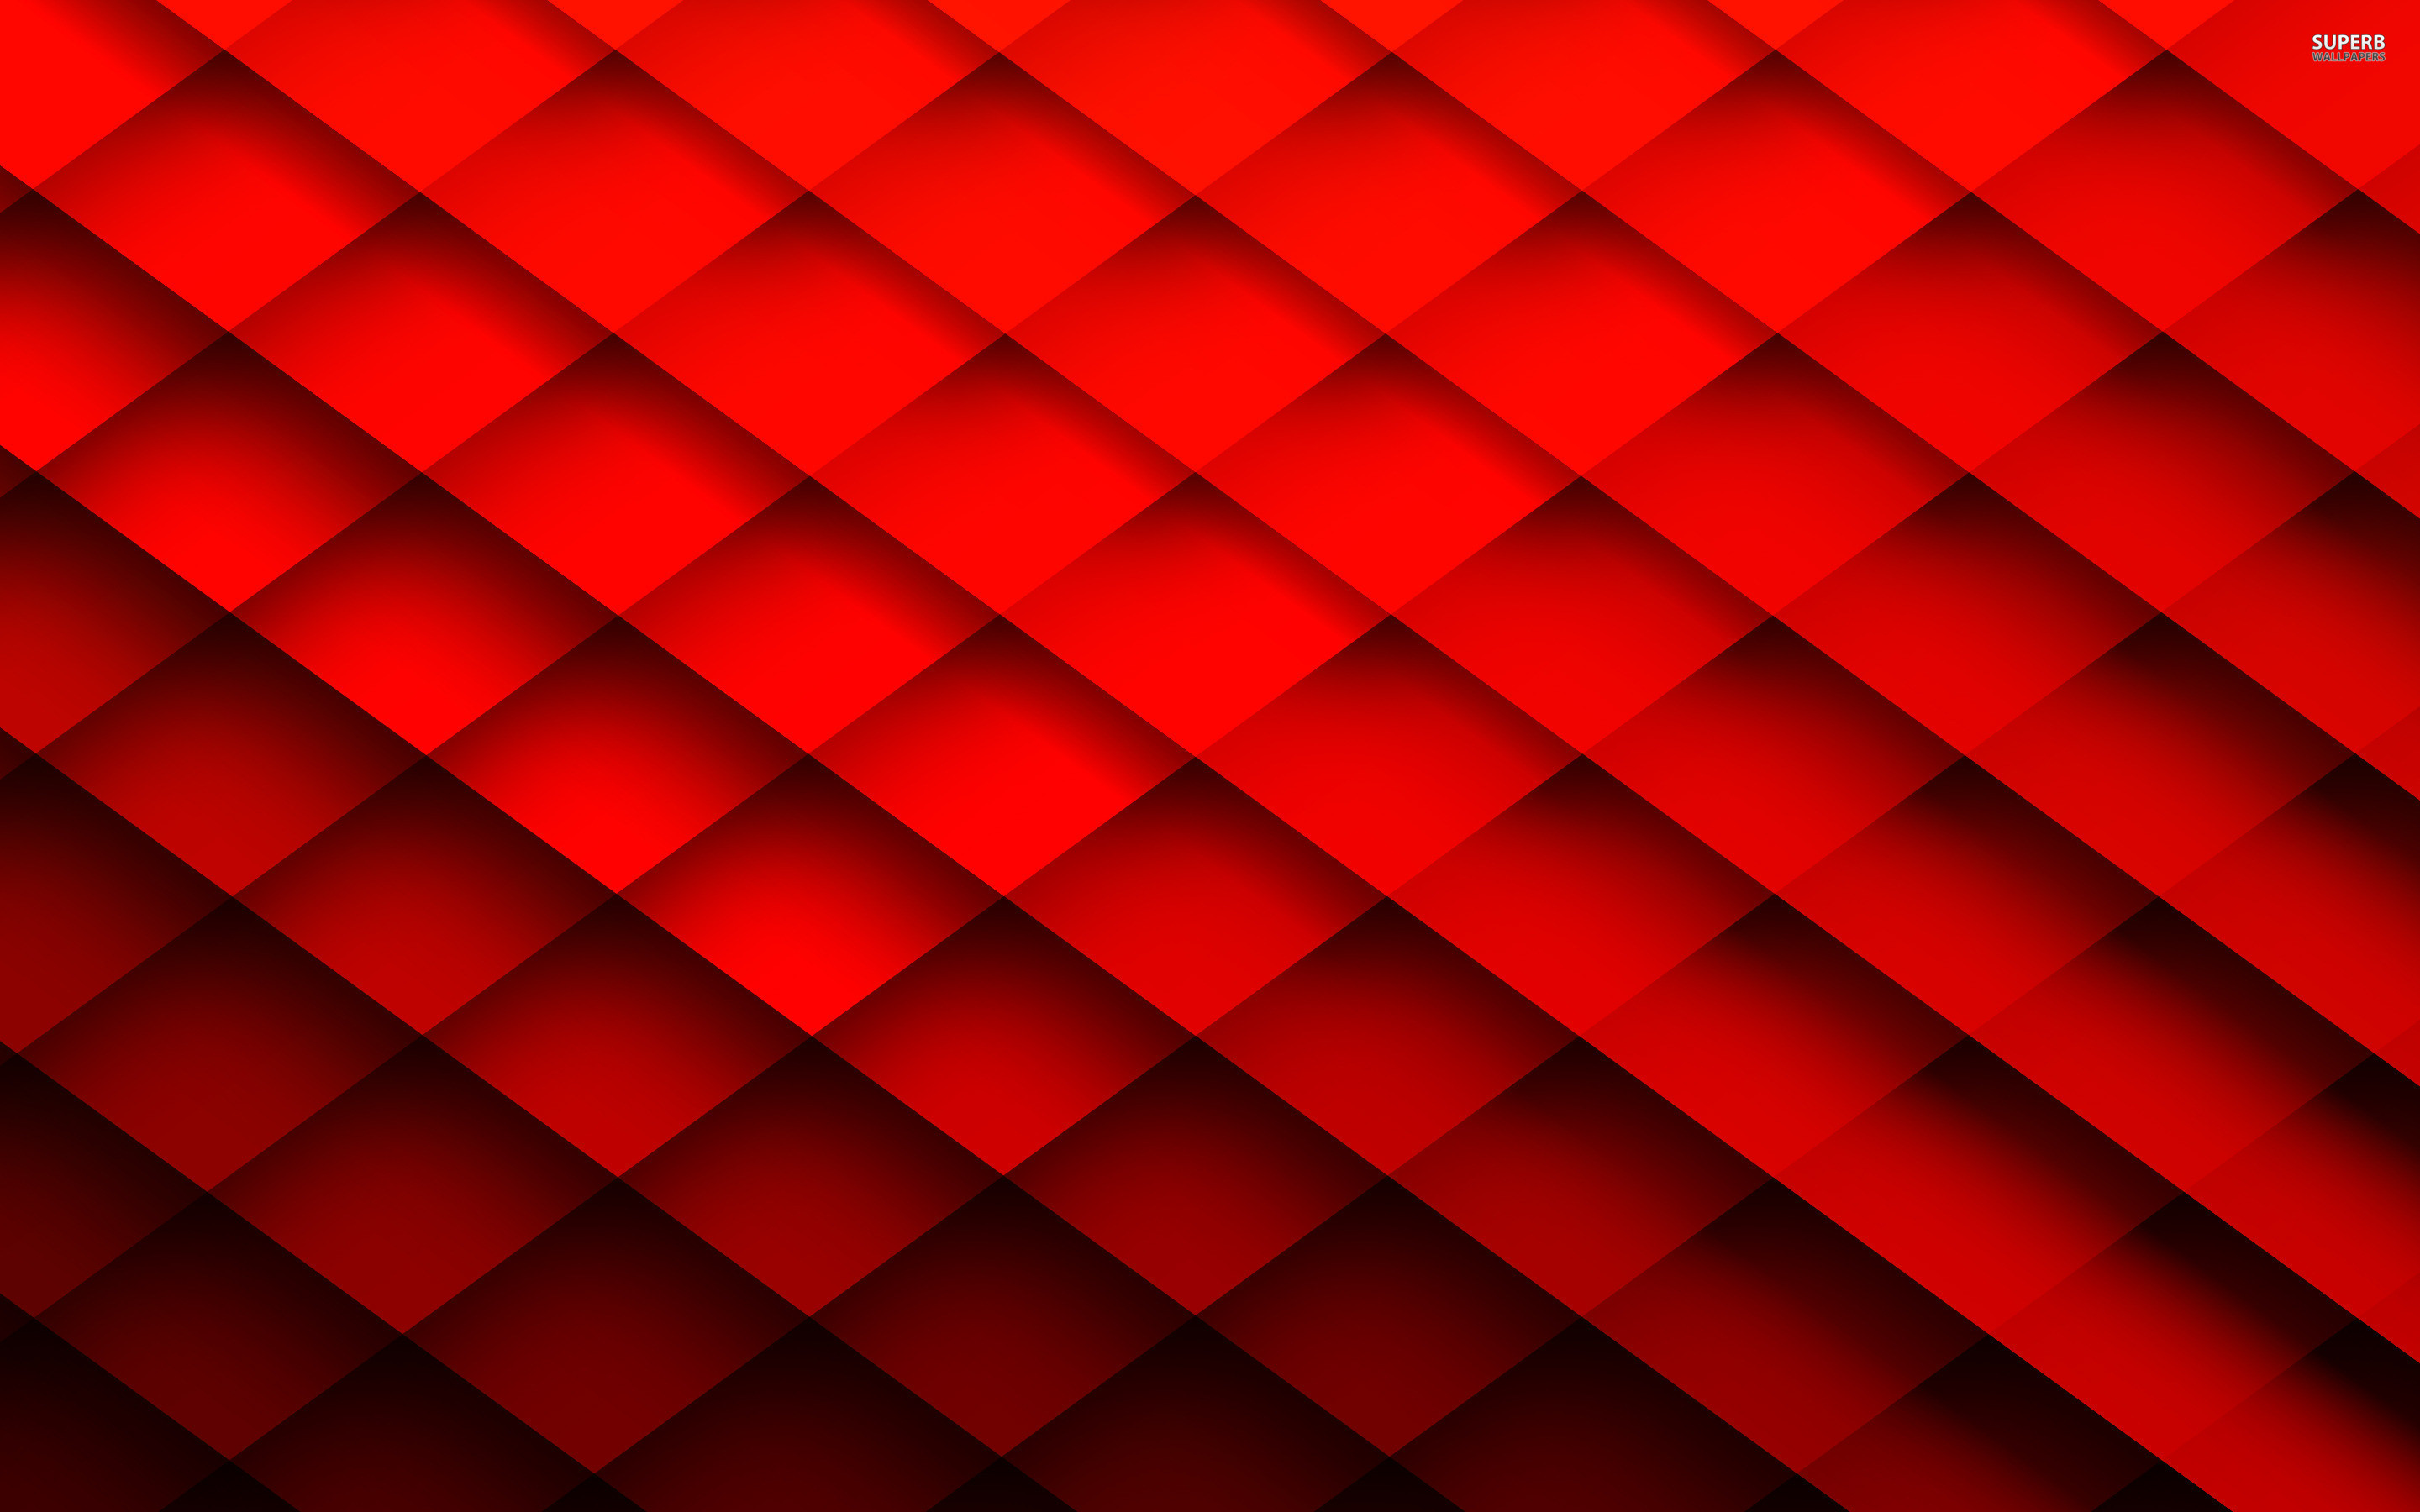 2880x1800 Red Abstract Hd Wallpaper Source. Red ...